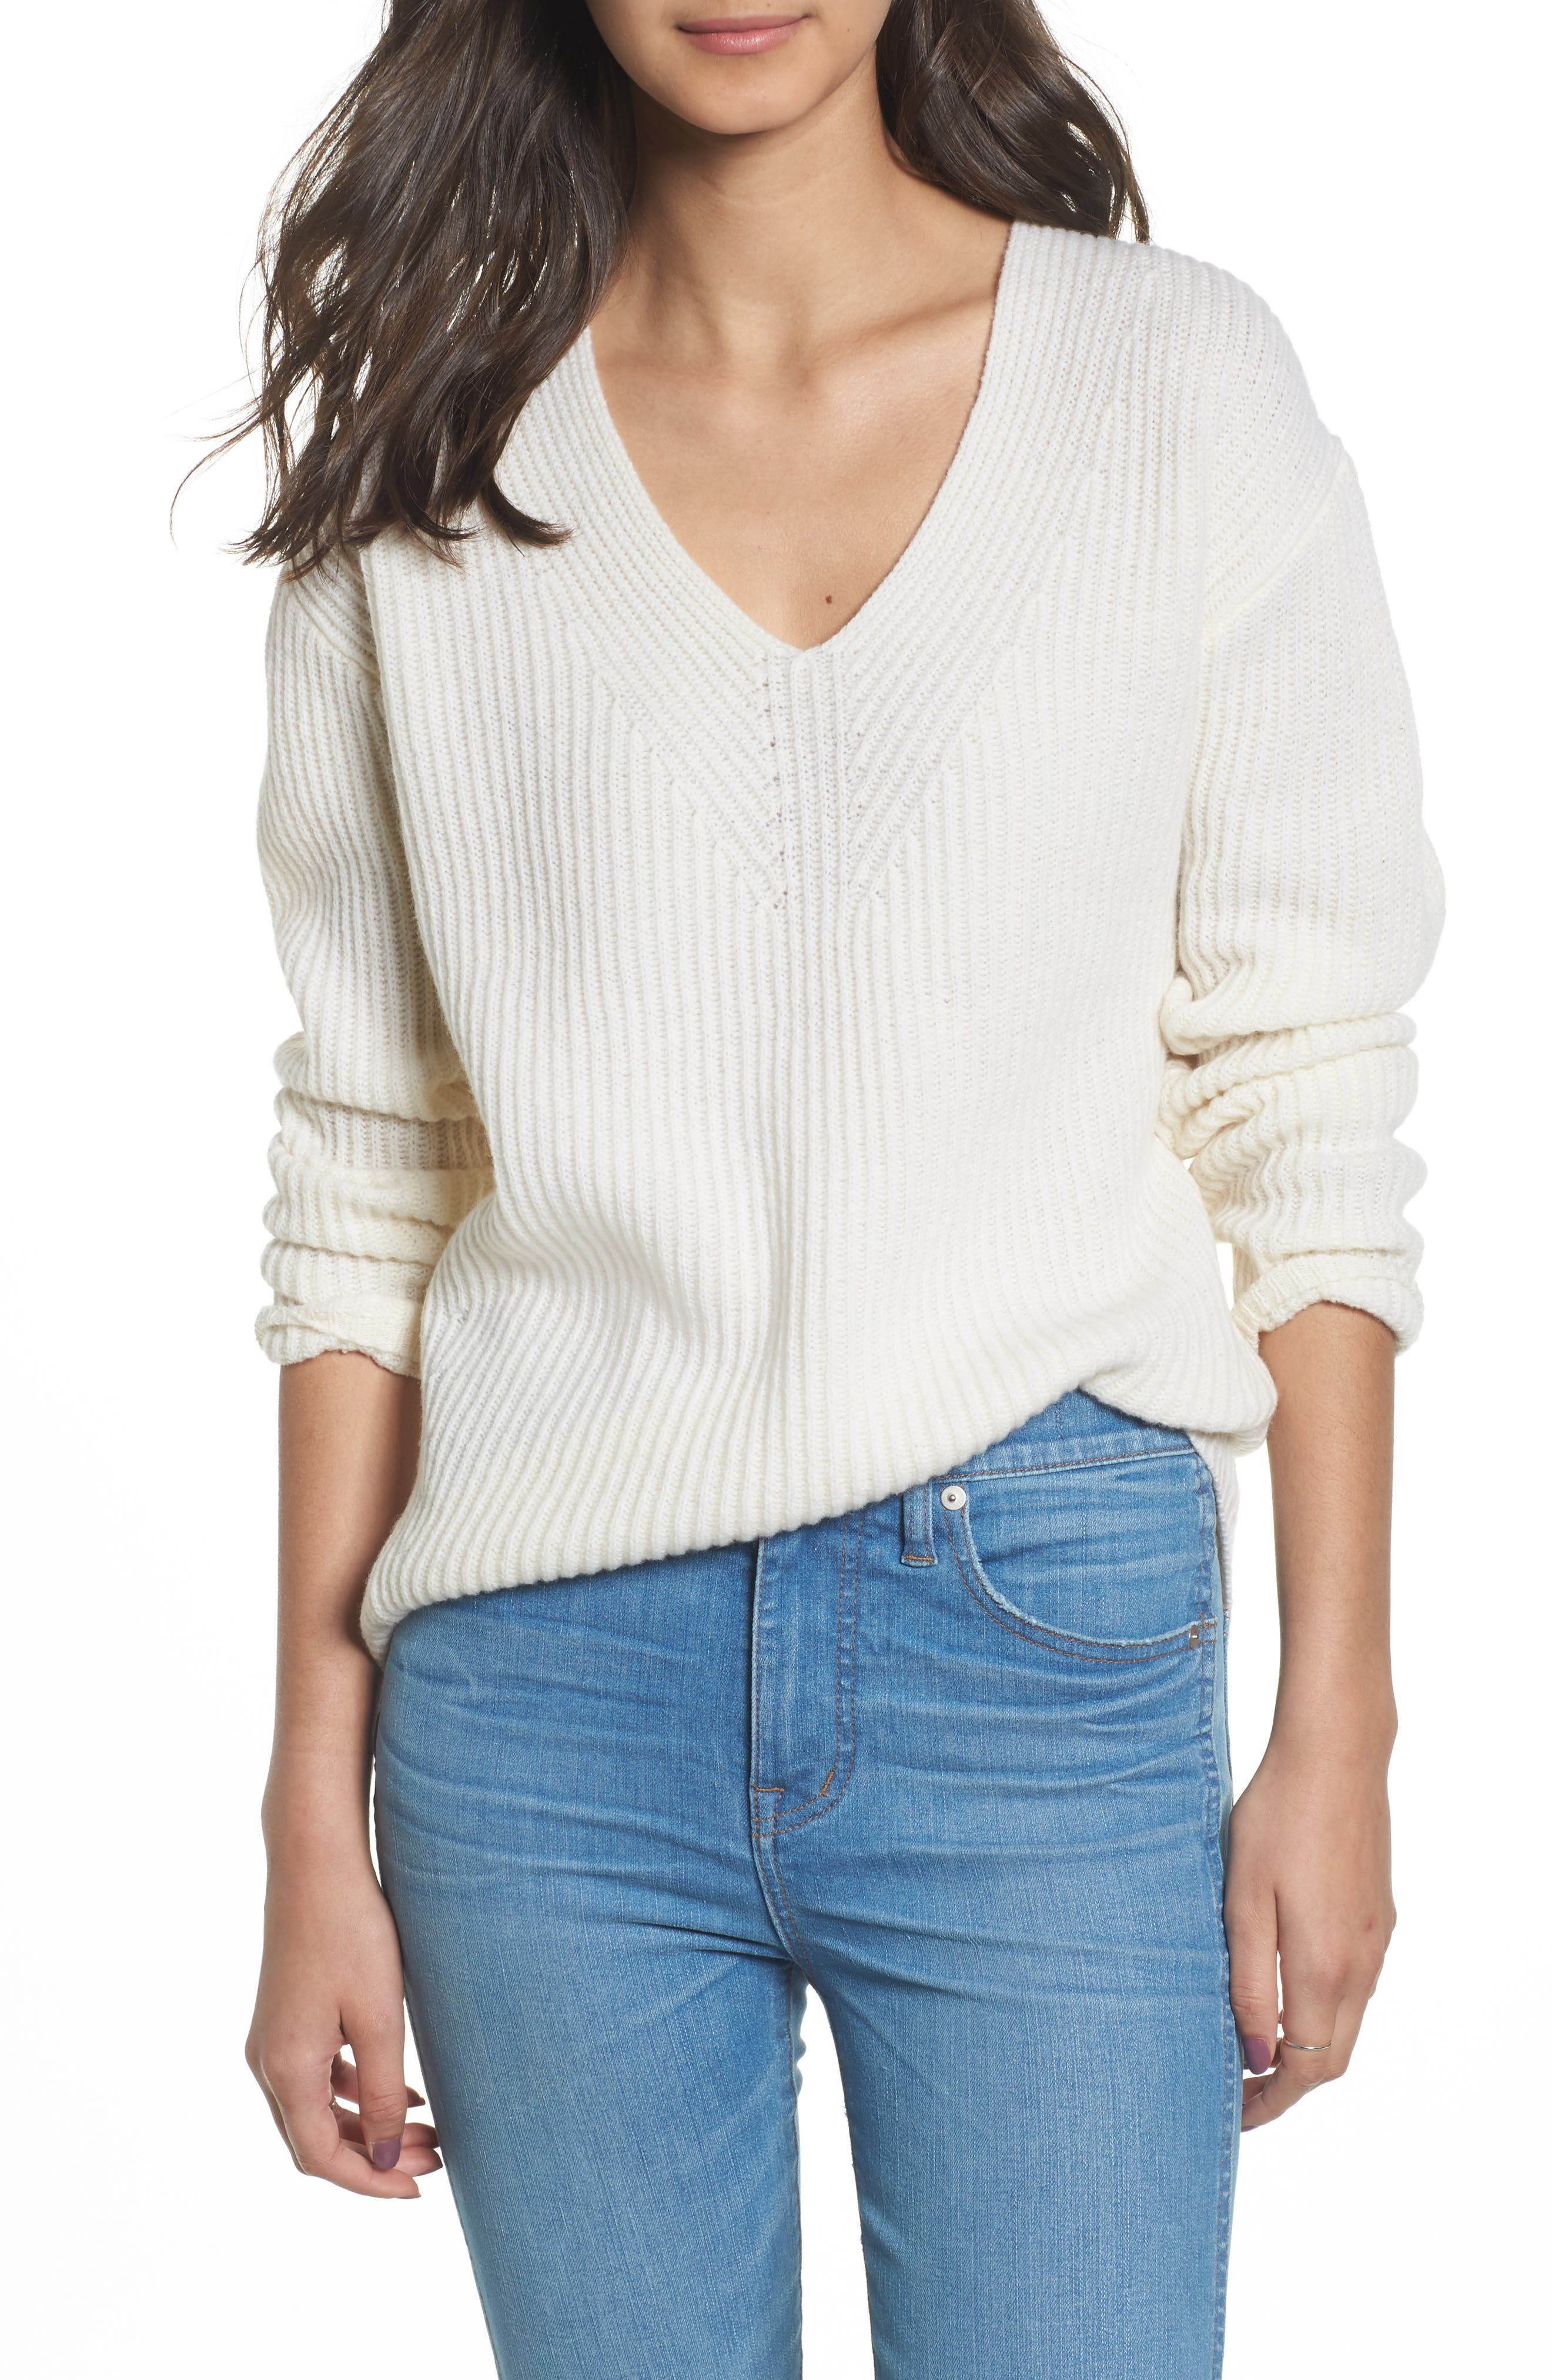 Woodside Pullover Sweater,                         Main,                         color, 101